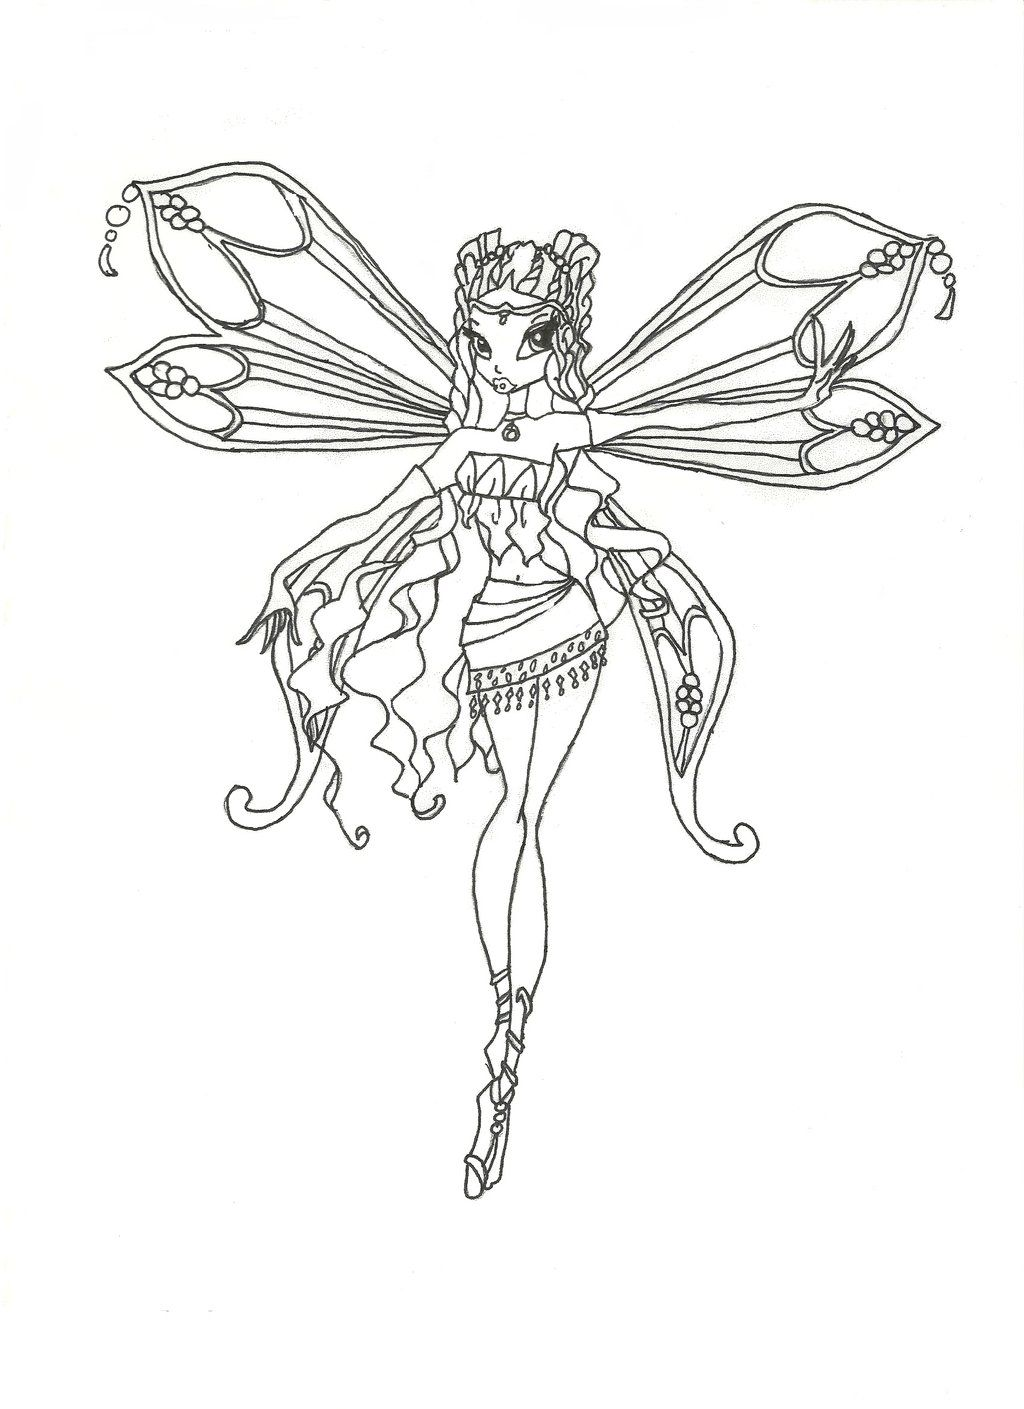 Winx Club Enchantix Layla coloring page by winxmagic237.deviantart ...